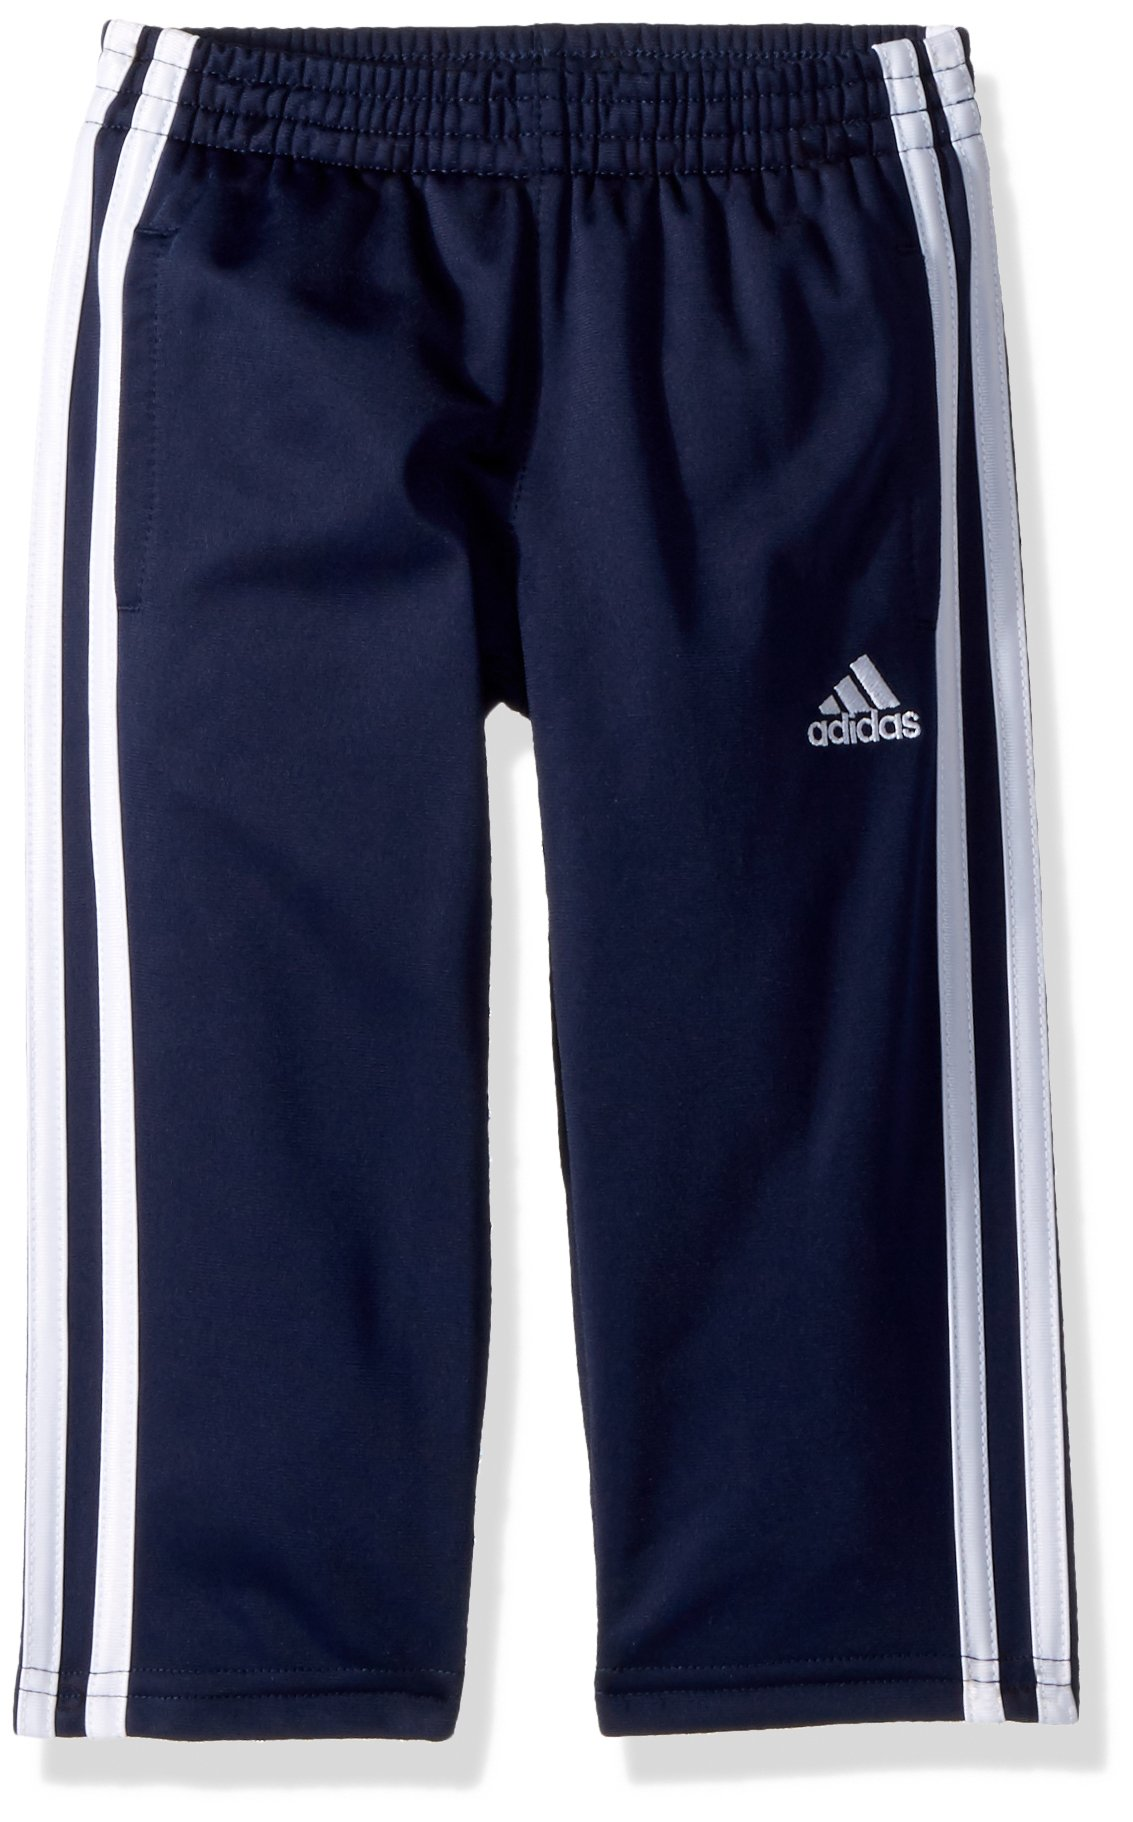 adidas Boys' Toddler Iconic Tricot Pant, Collegiate Navy, 4T